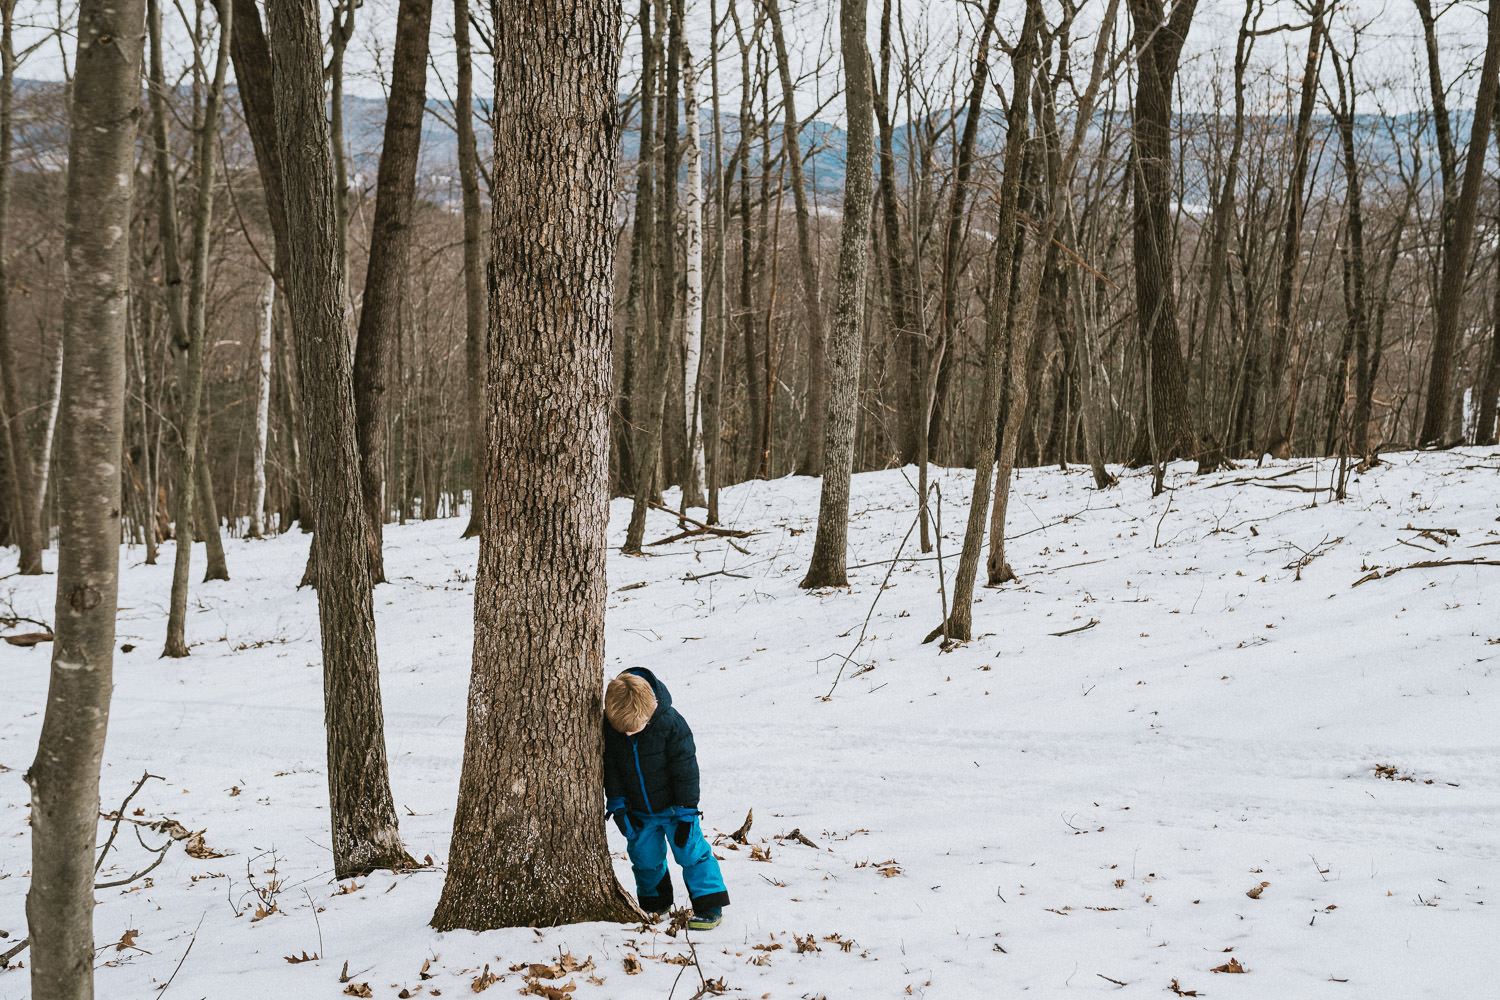 A little boy leans against a tree in the snow.